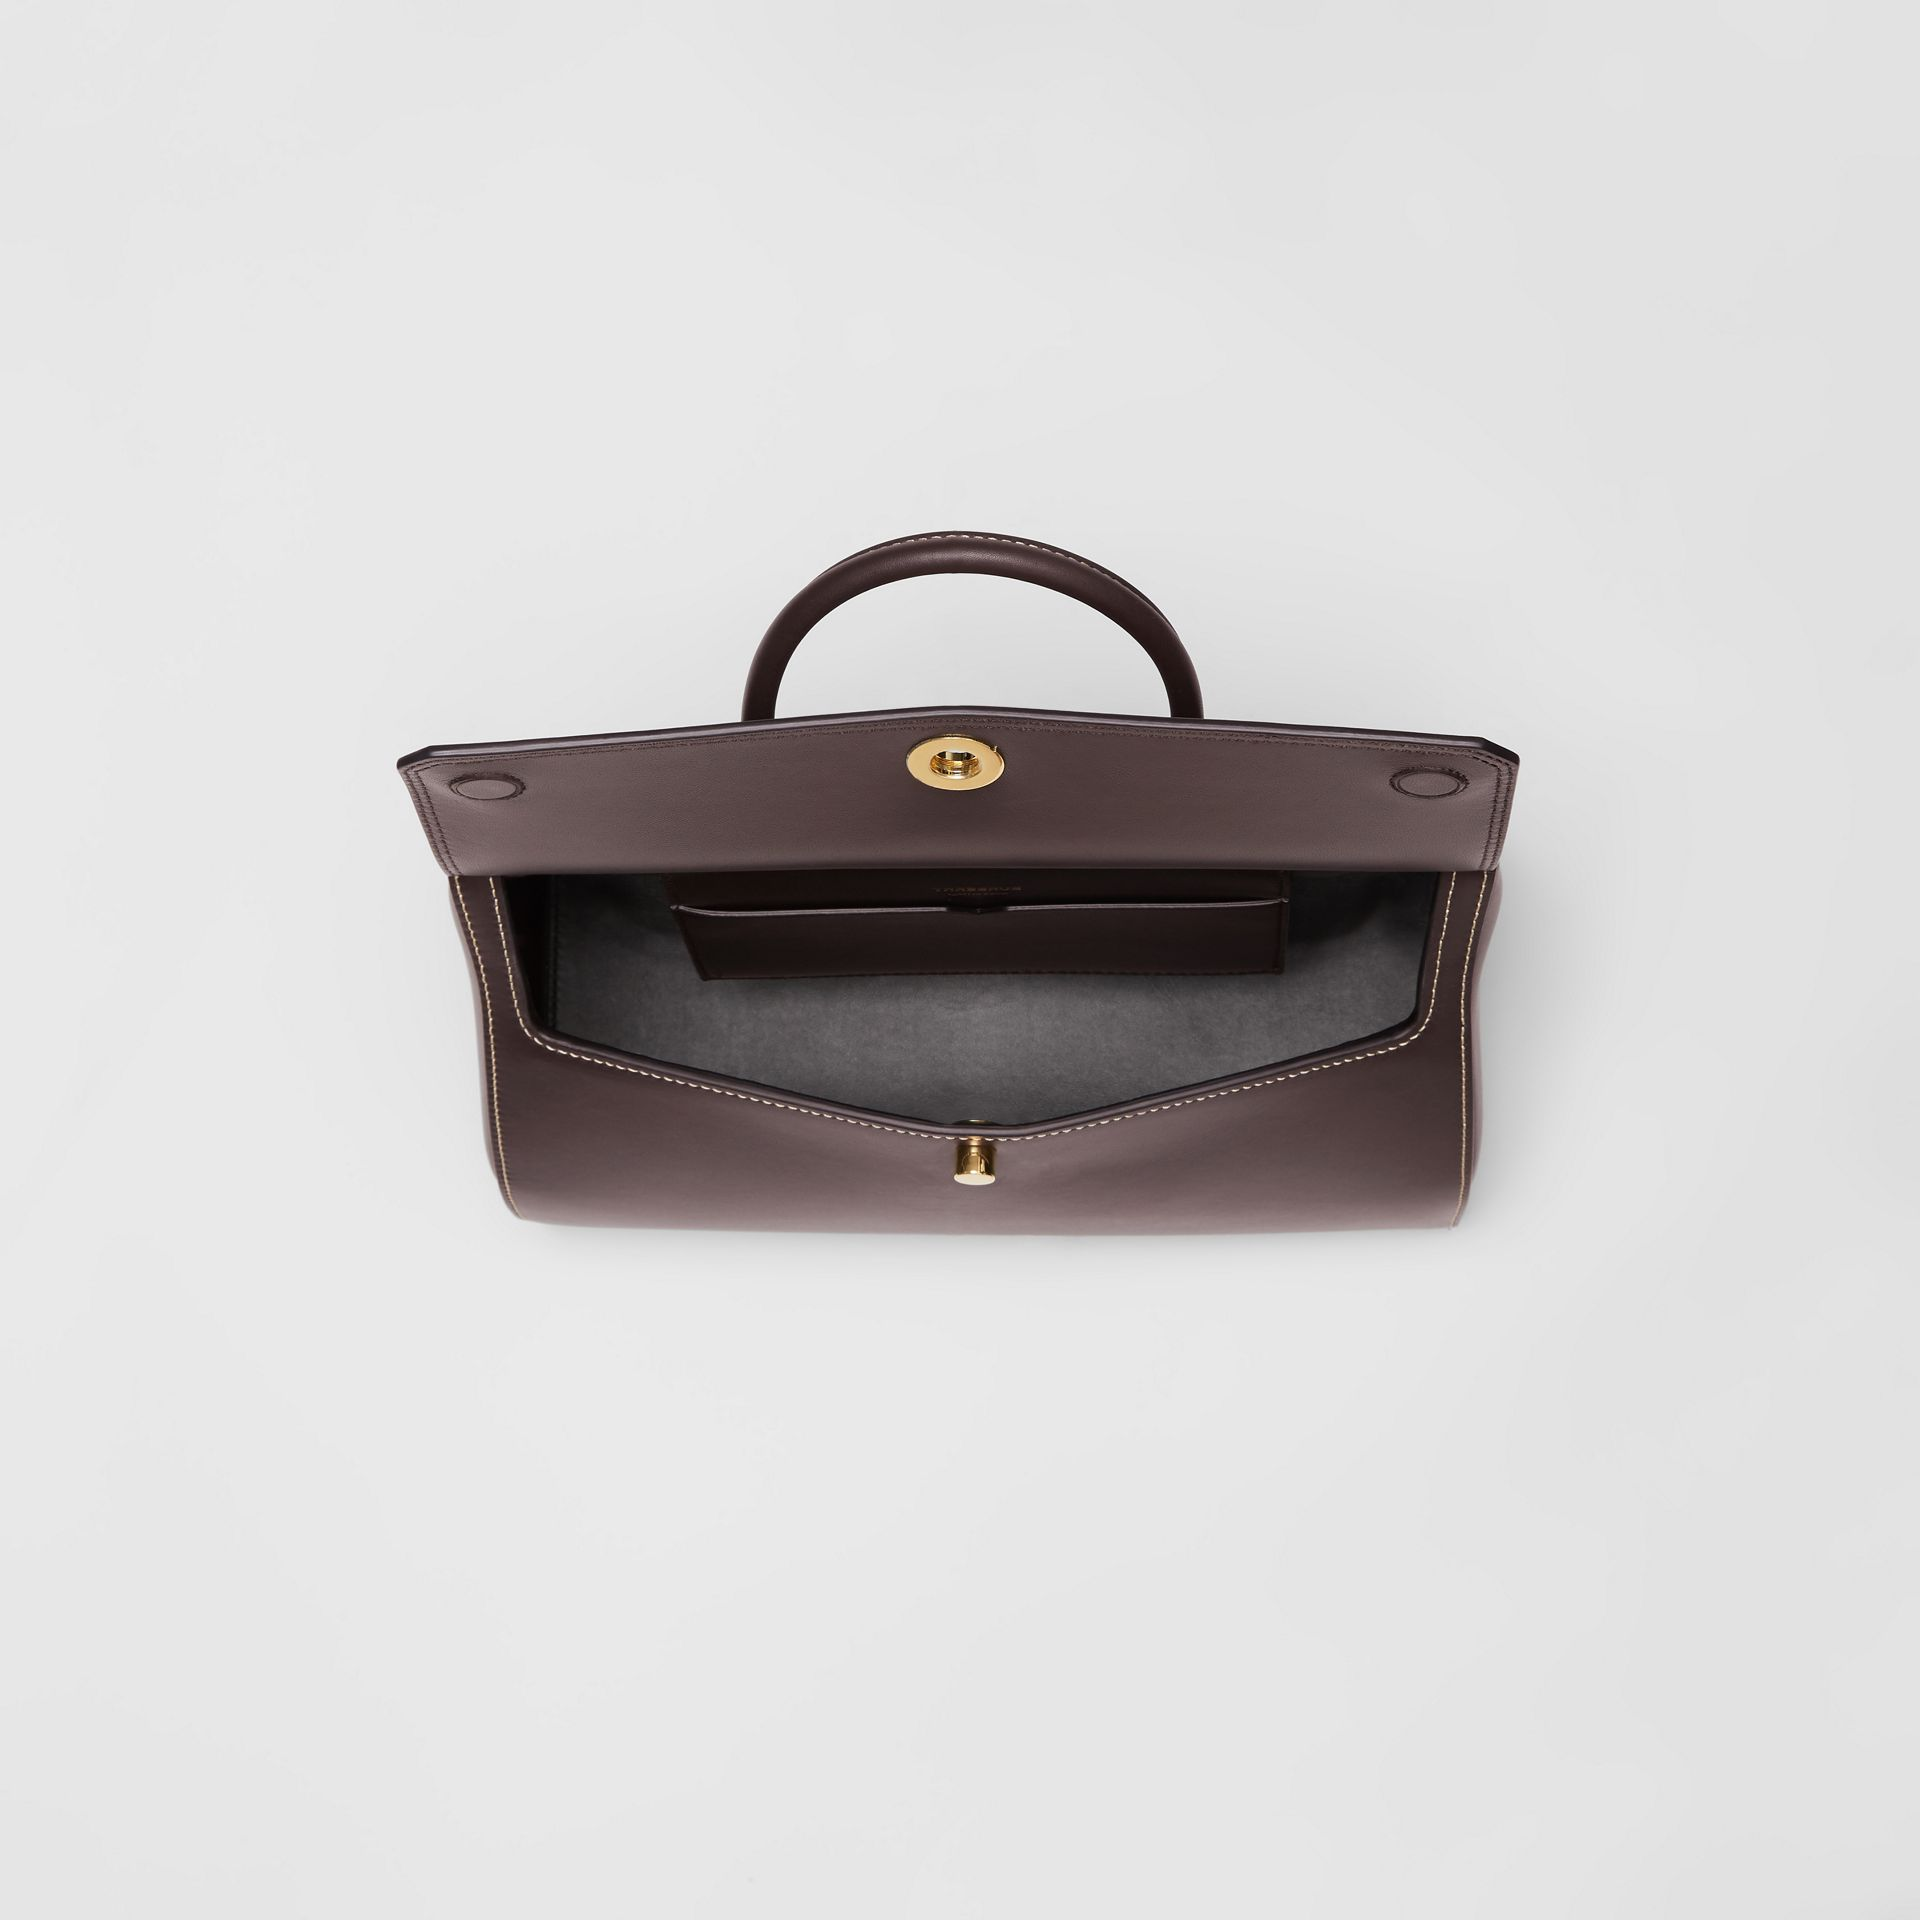 Small Leather Elizabeth Bag in Coffee - Women | Burberry - gallery image 3